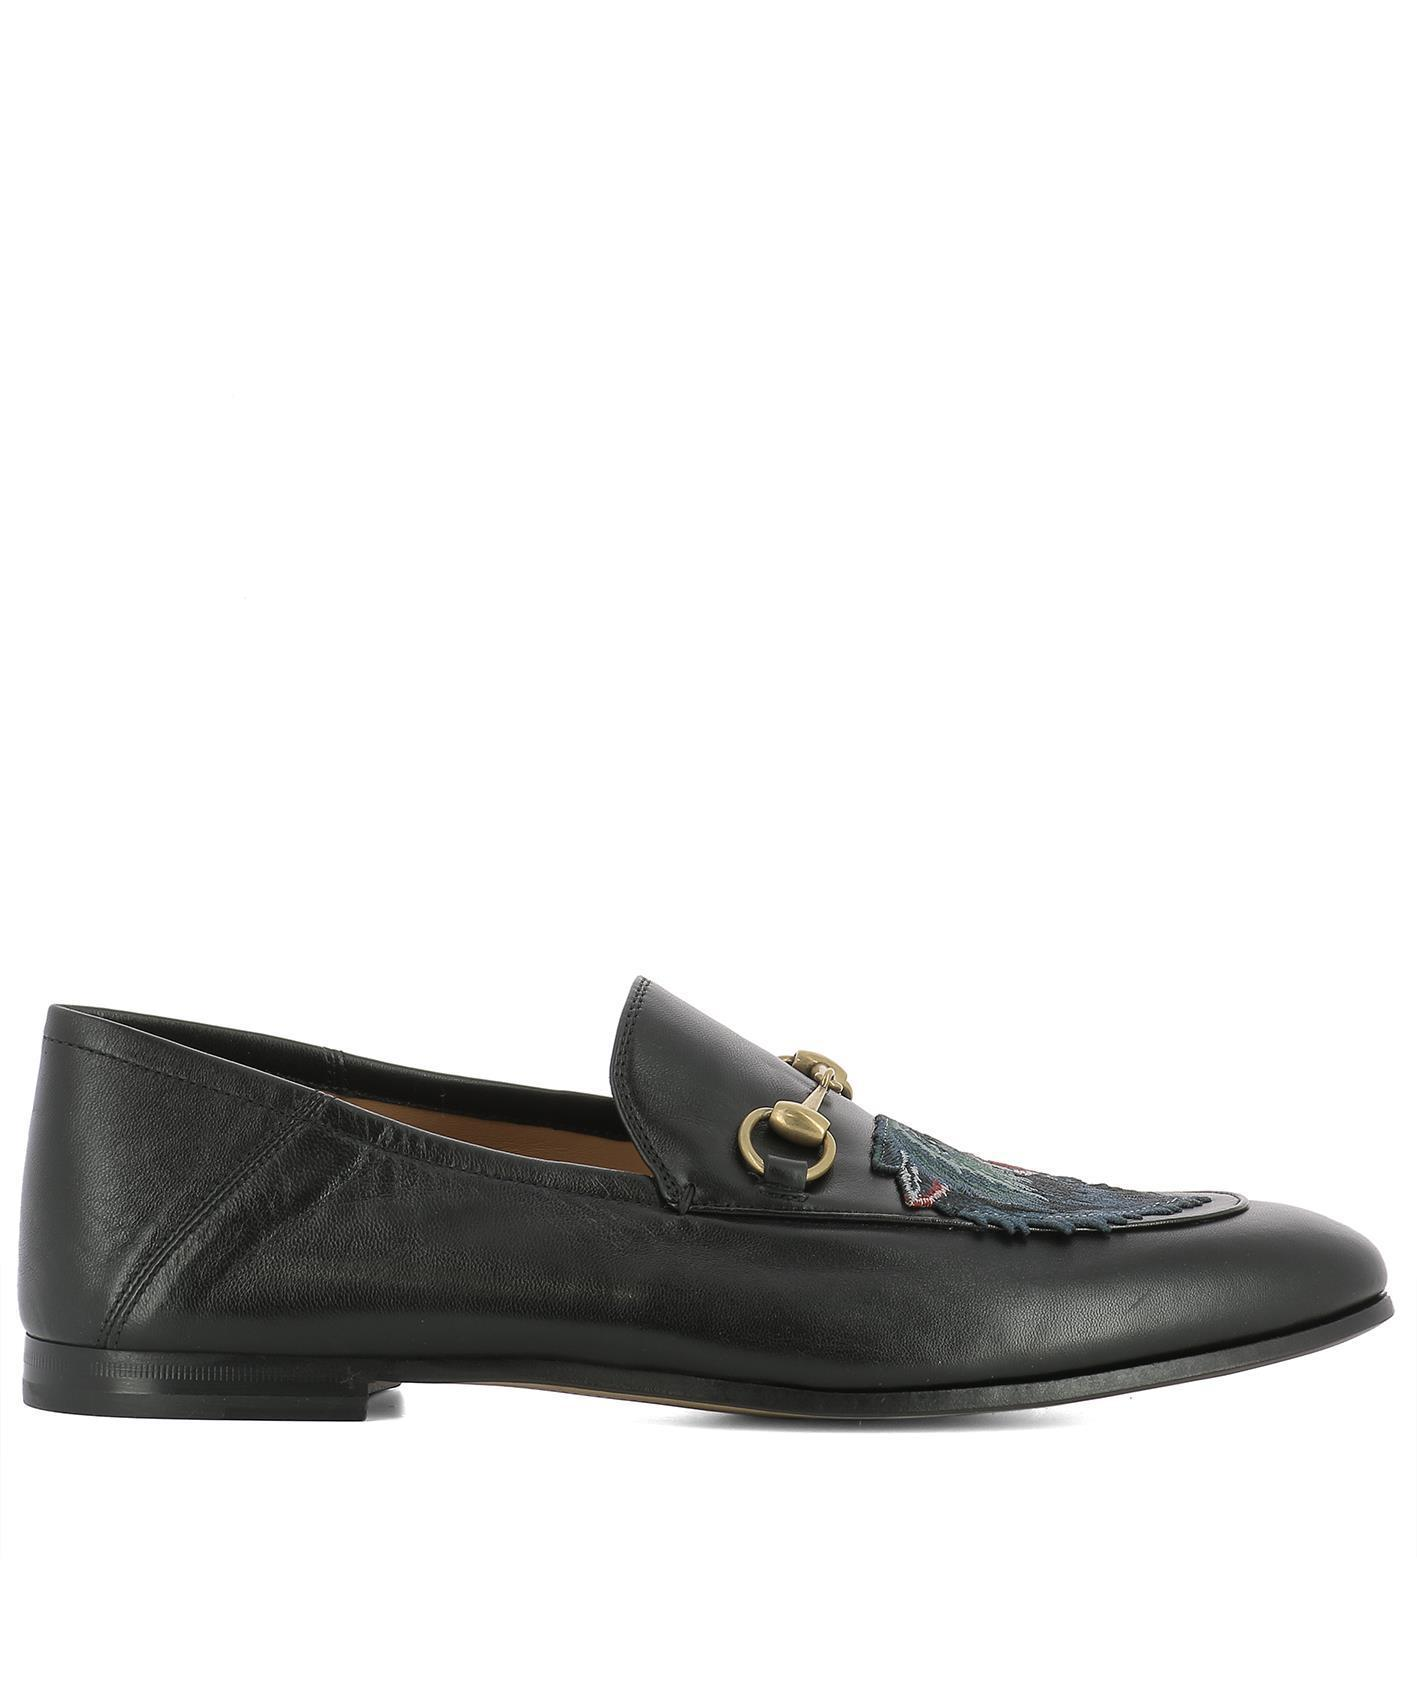 0c4dd8f7e30 Gucci Patched Loafers in Black for Men - Save 2.07253886010362% - Lyst